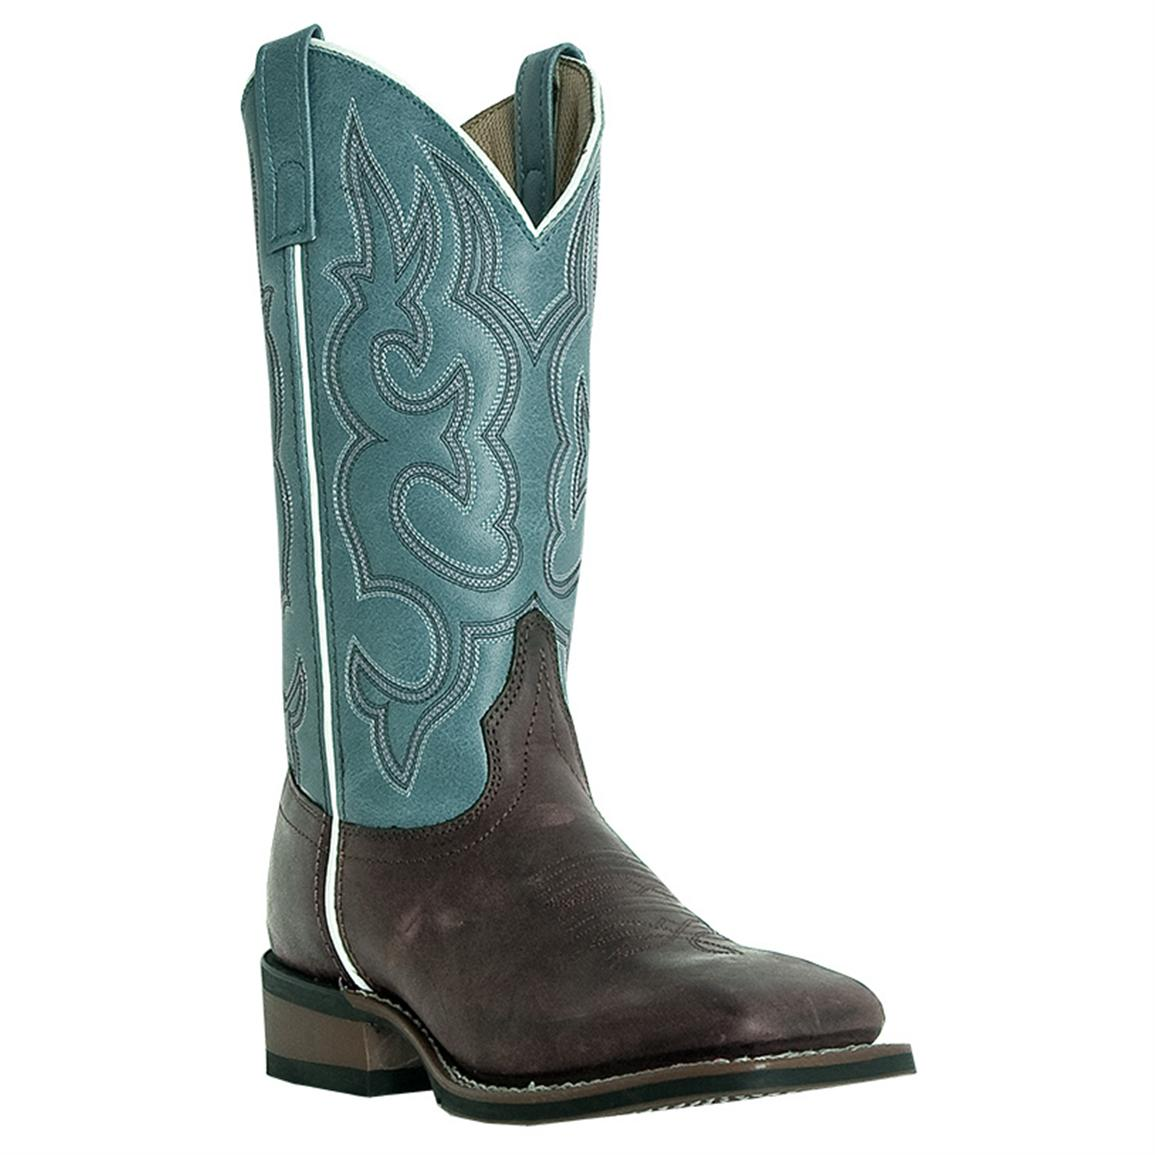 Women's Laredo 11 inch Mesquite Western Boots, Light Blue / Brown